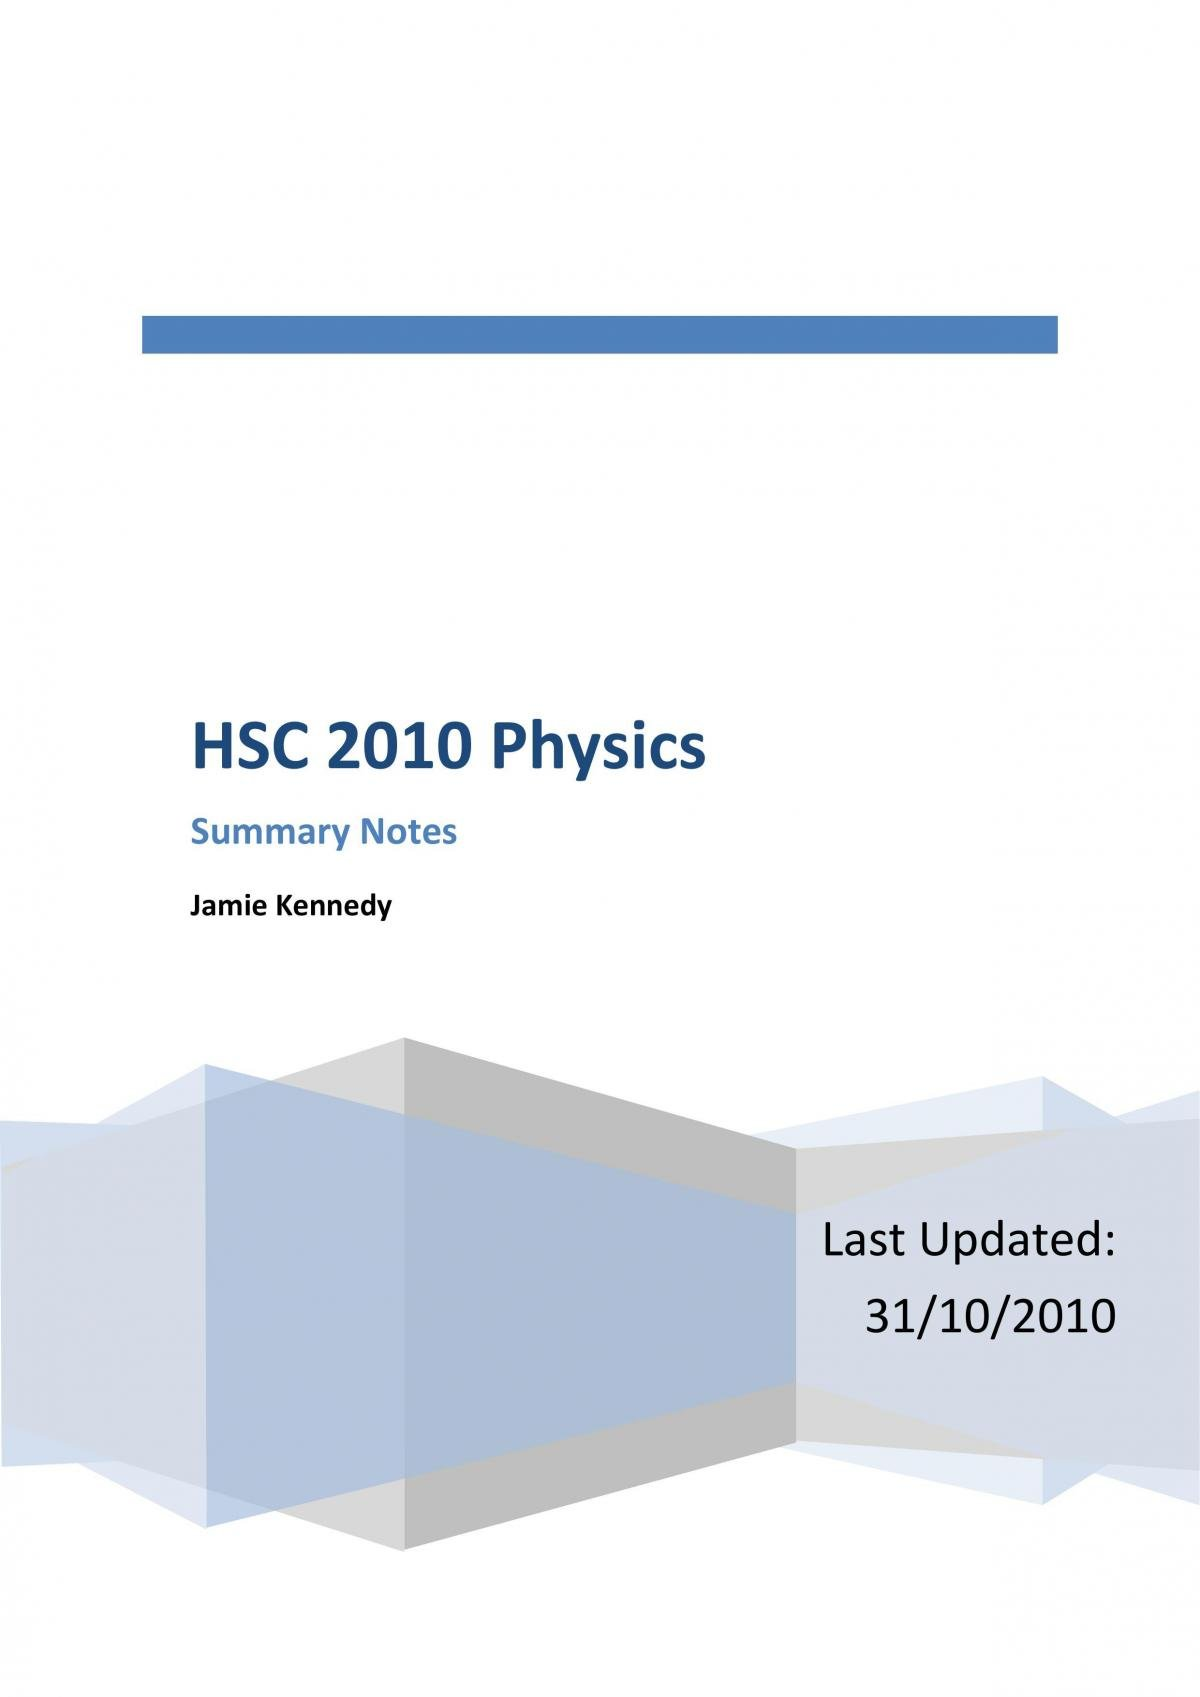 hsc physics notes - Page 1